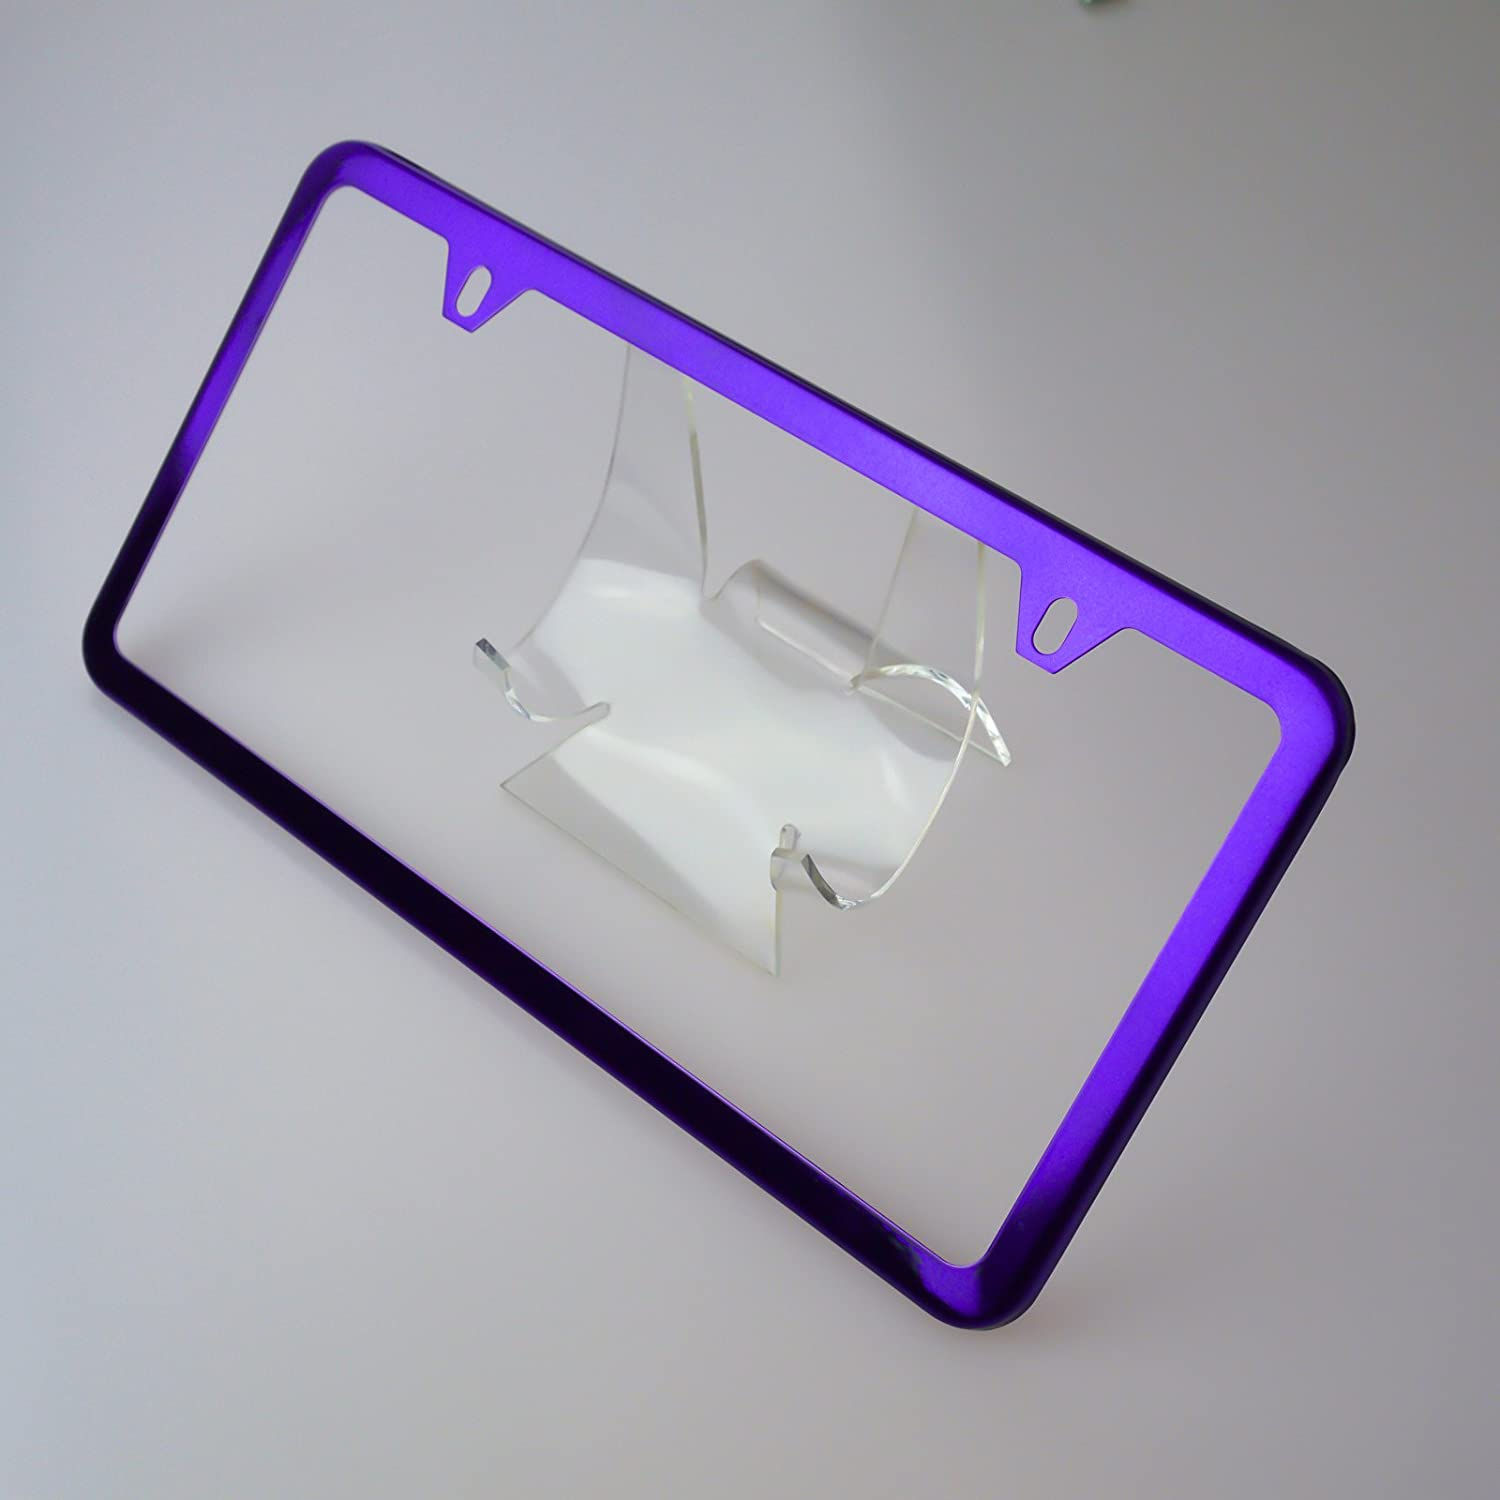 Amazon.com: Circle Cool Purple Chrome Powder Coated Stainless Steel License Plate Slim Two Hole Frame Holder Bracket: Automotive